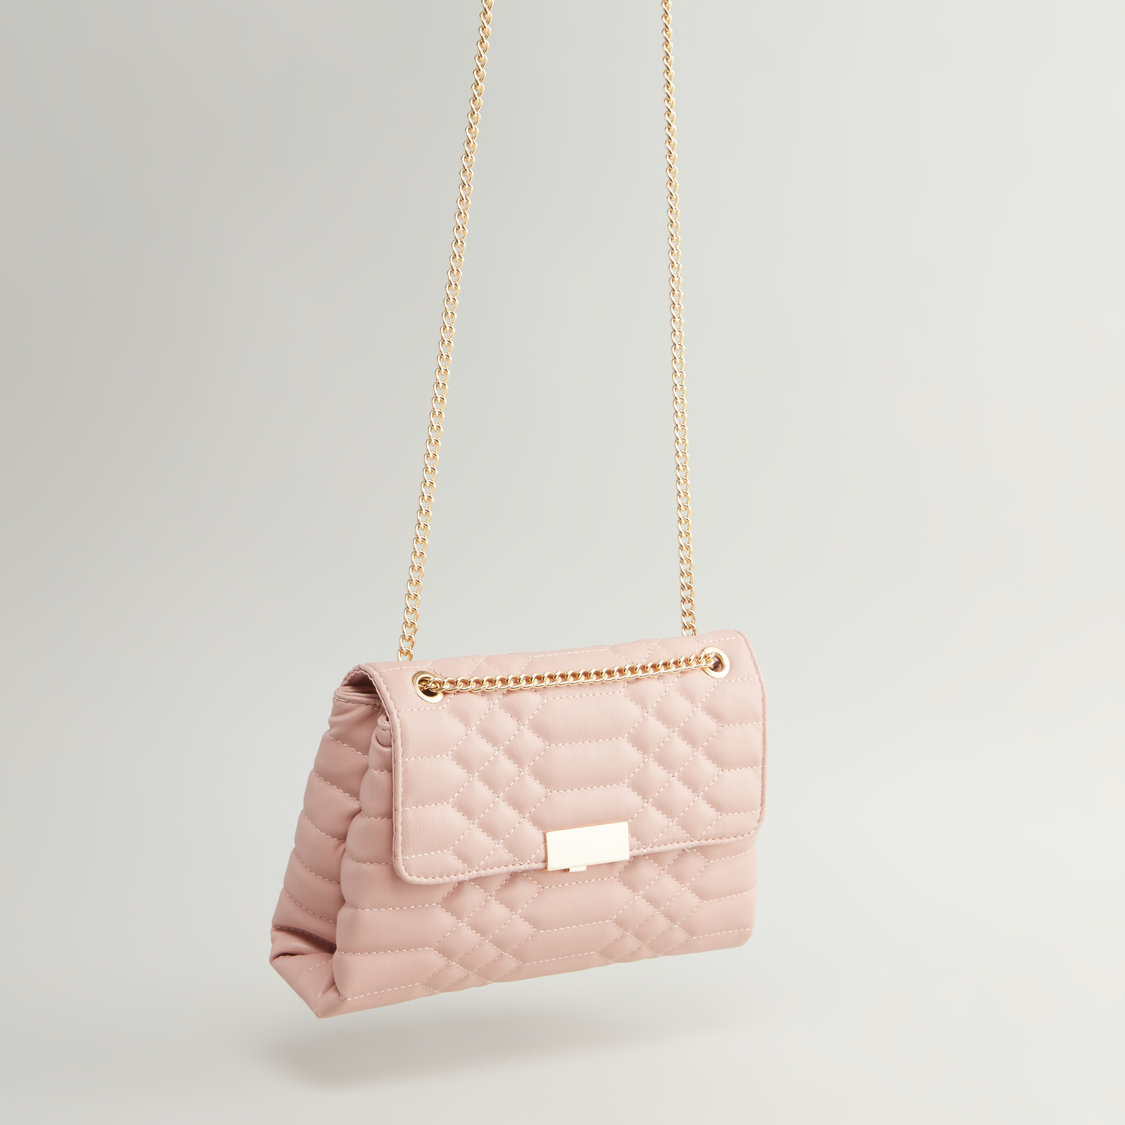 Textured Handbag with Magnetic Snap Closure and Metallic Chain